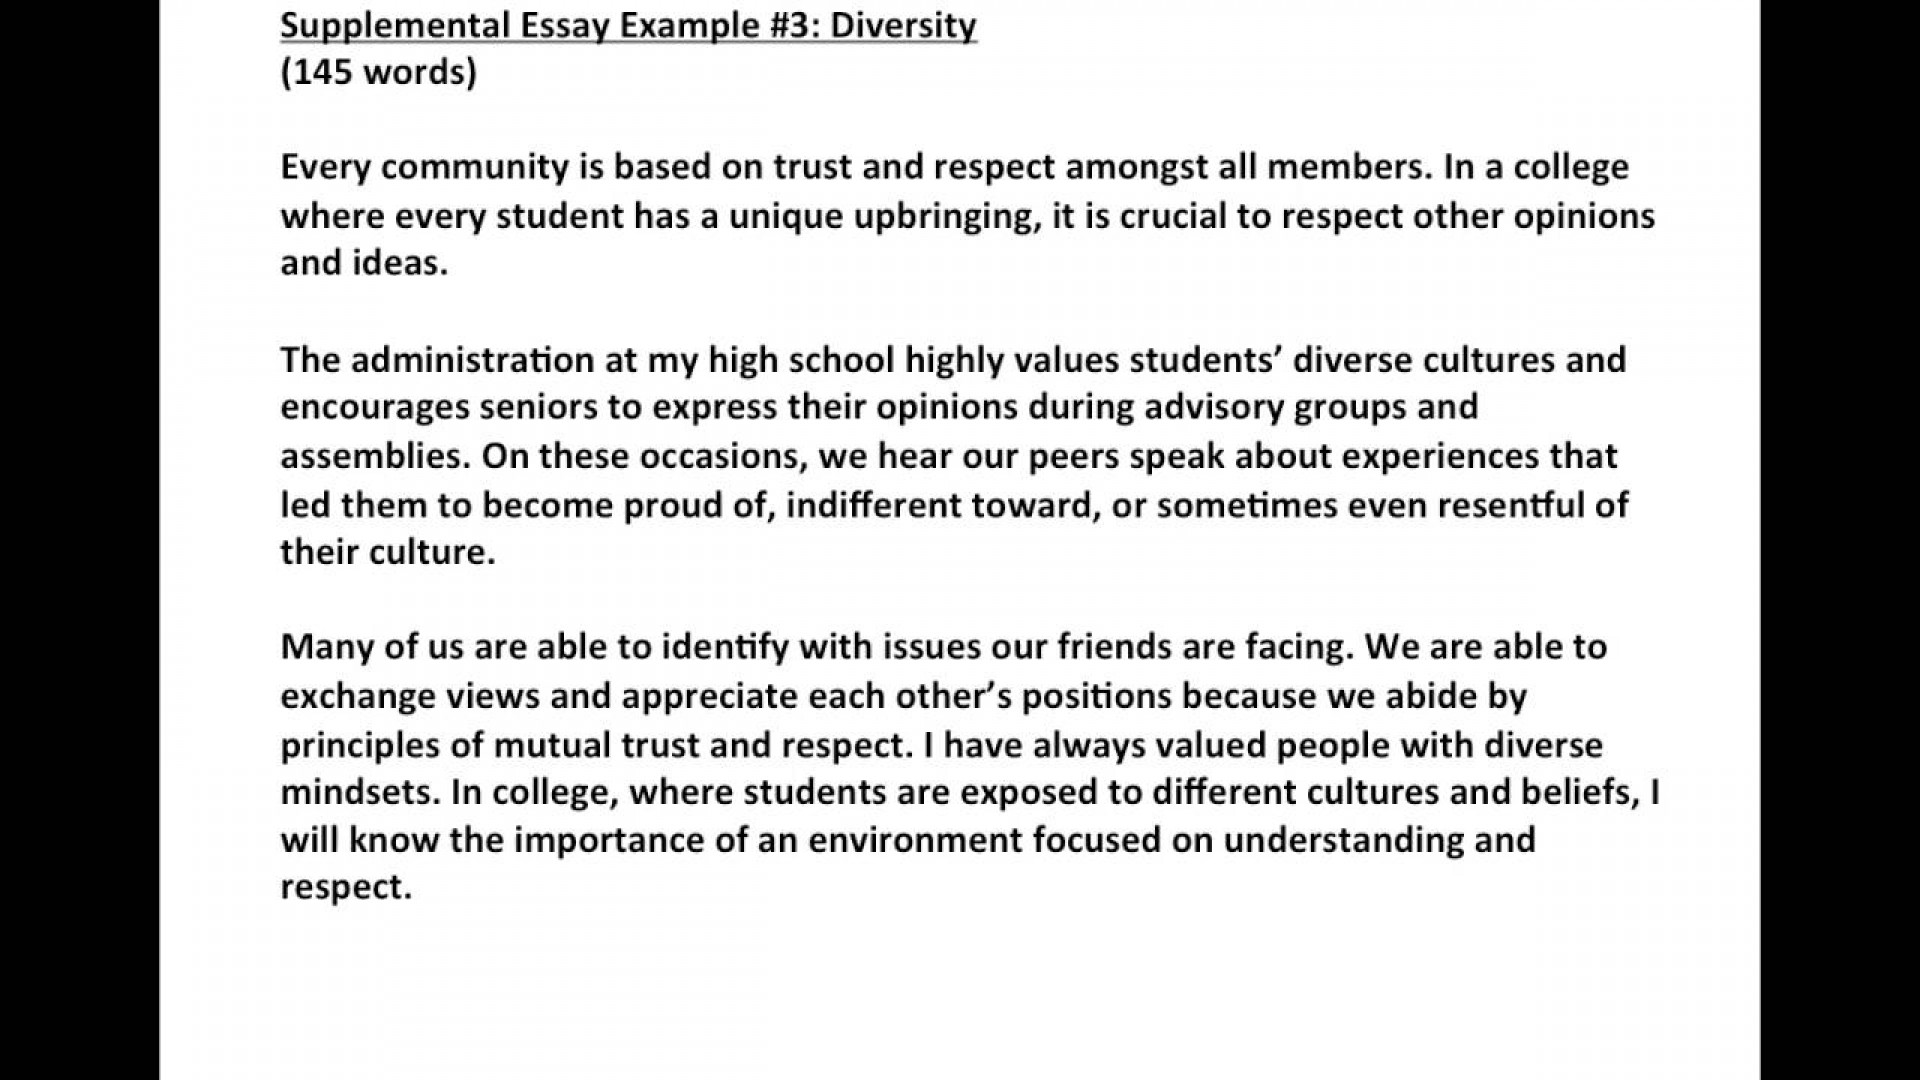 002 Maxresdefault Essay Example Diversity Staggering College And Inclusion Statement 1920